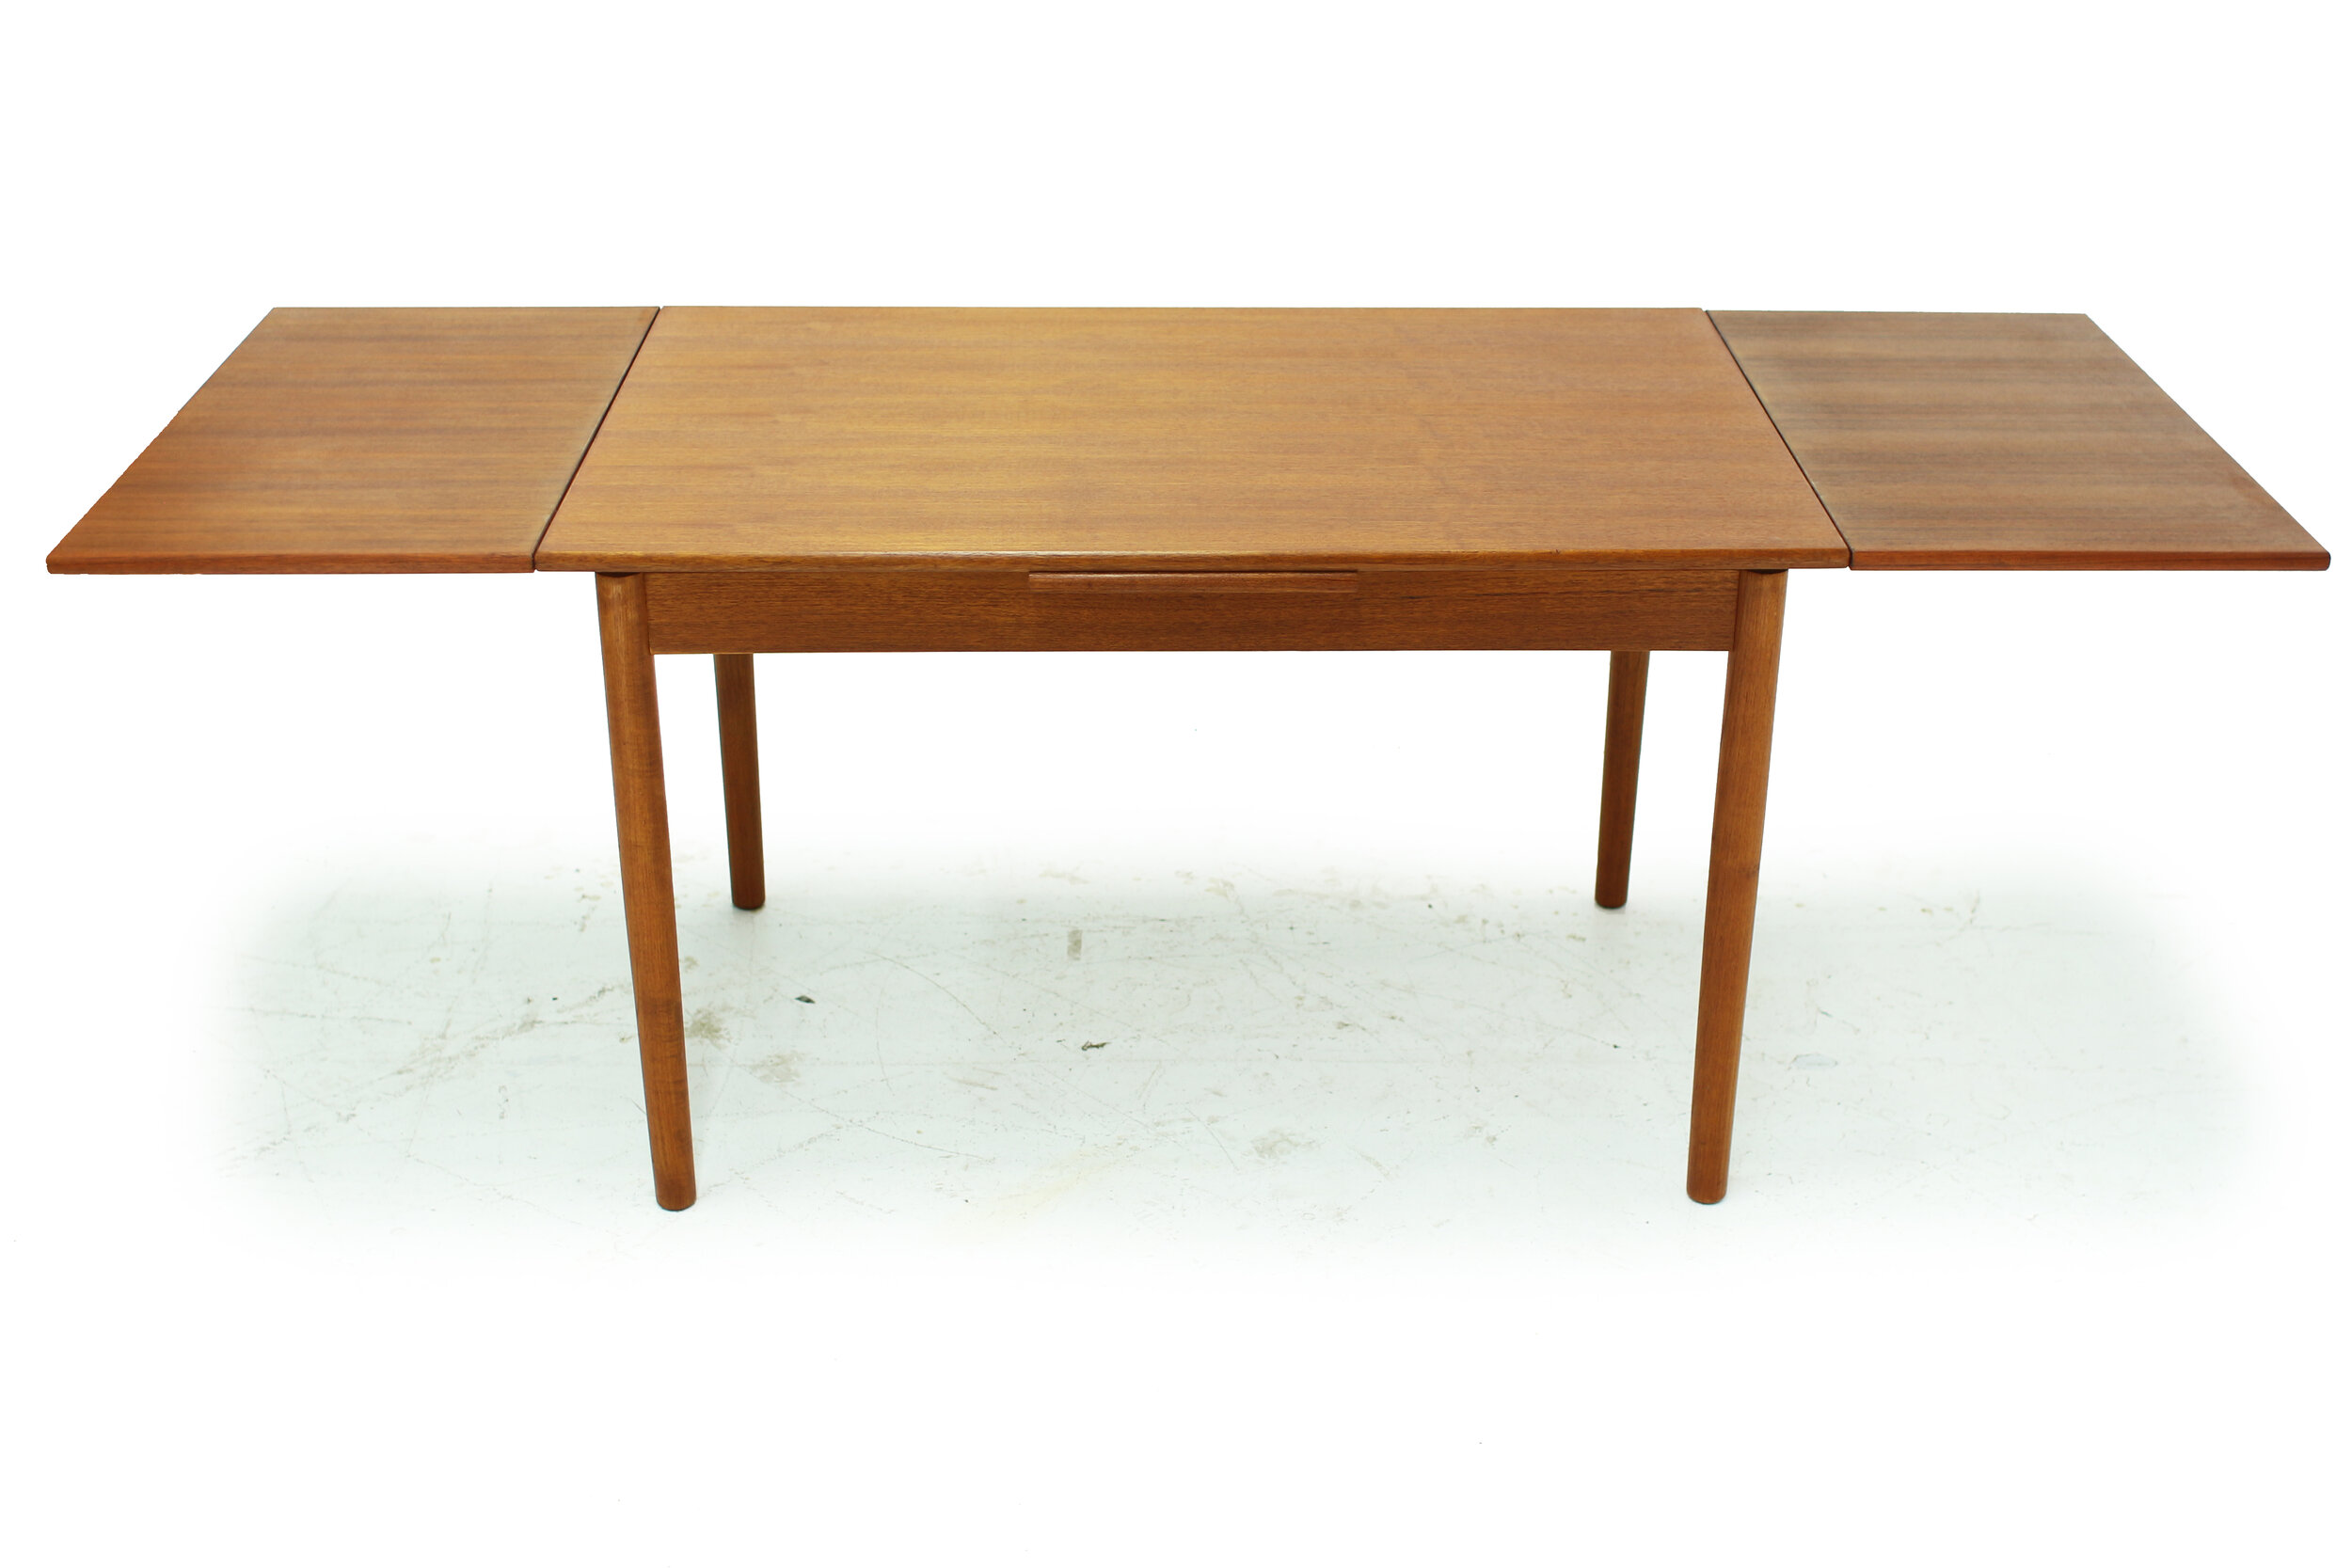 Danish Teak Dining Table with Extentions (3).jpg